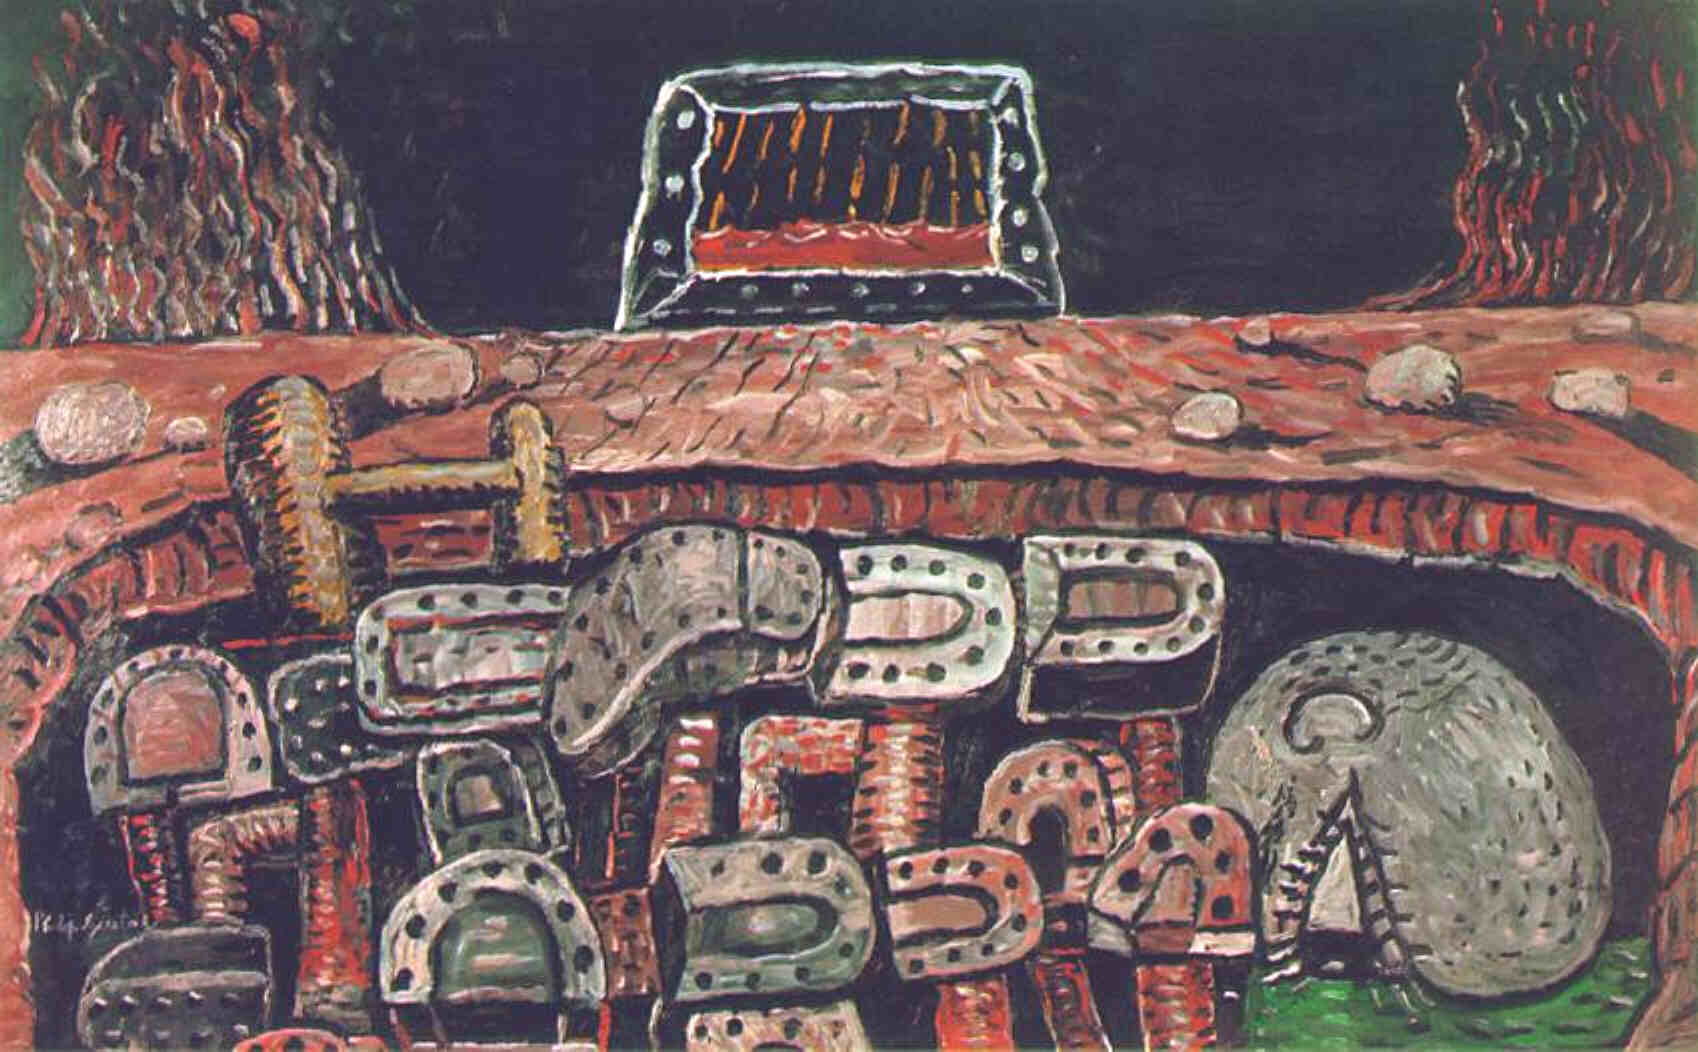 Philip Guston, The Pit, 1976. Courtesy McKee Gallery, New York © The Estate of Philip Guston